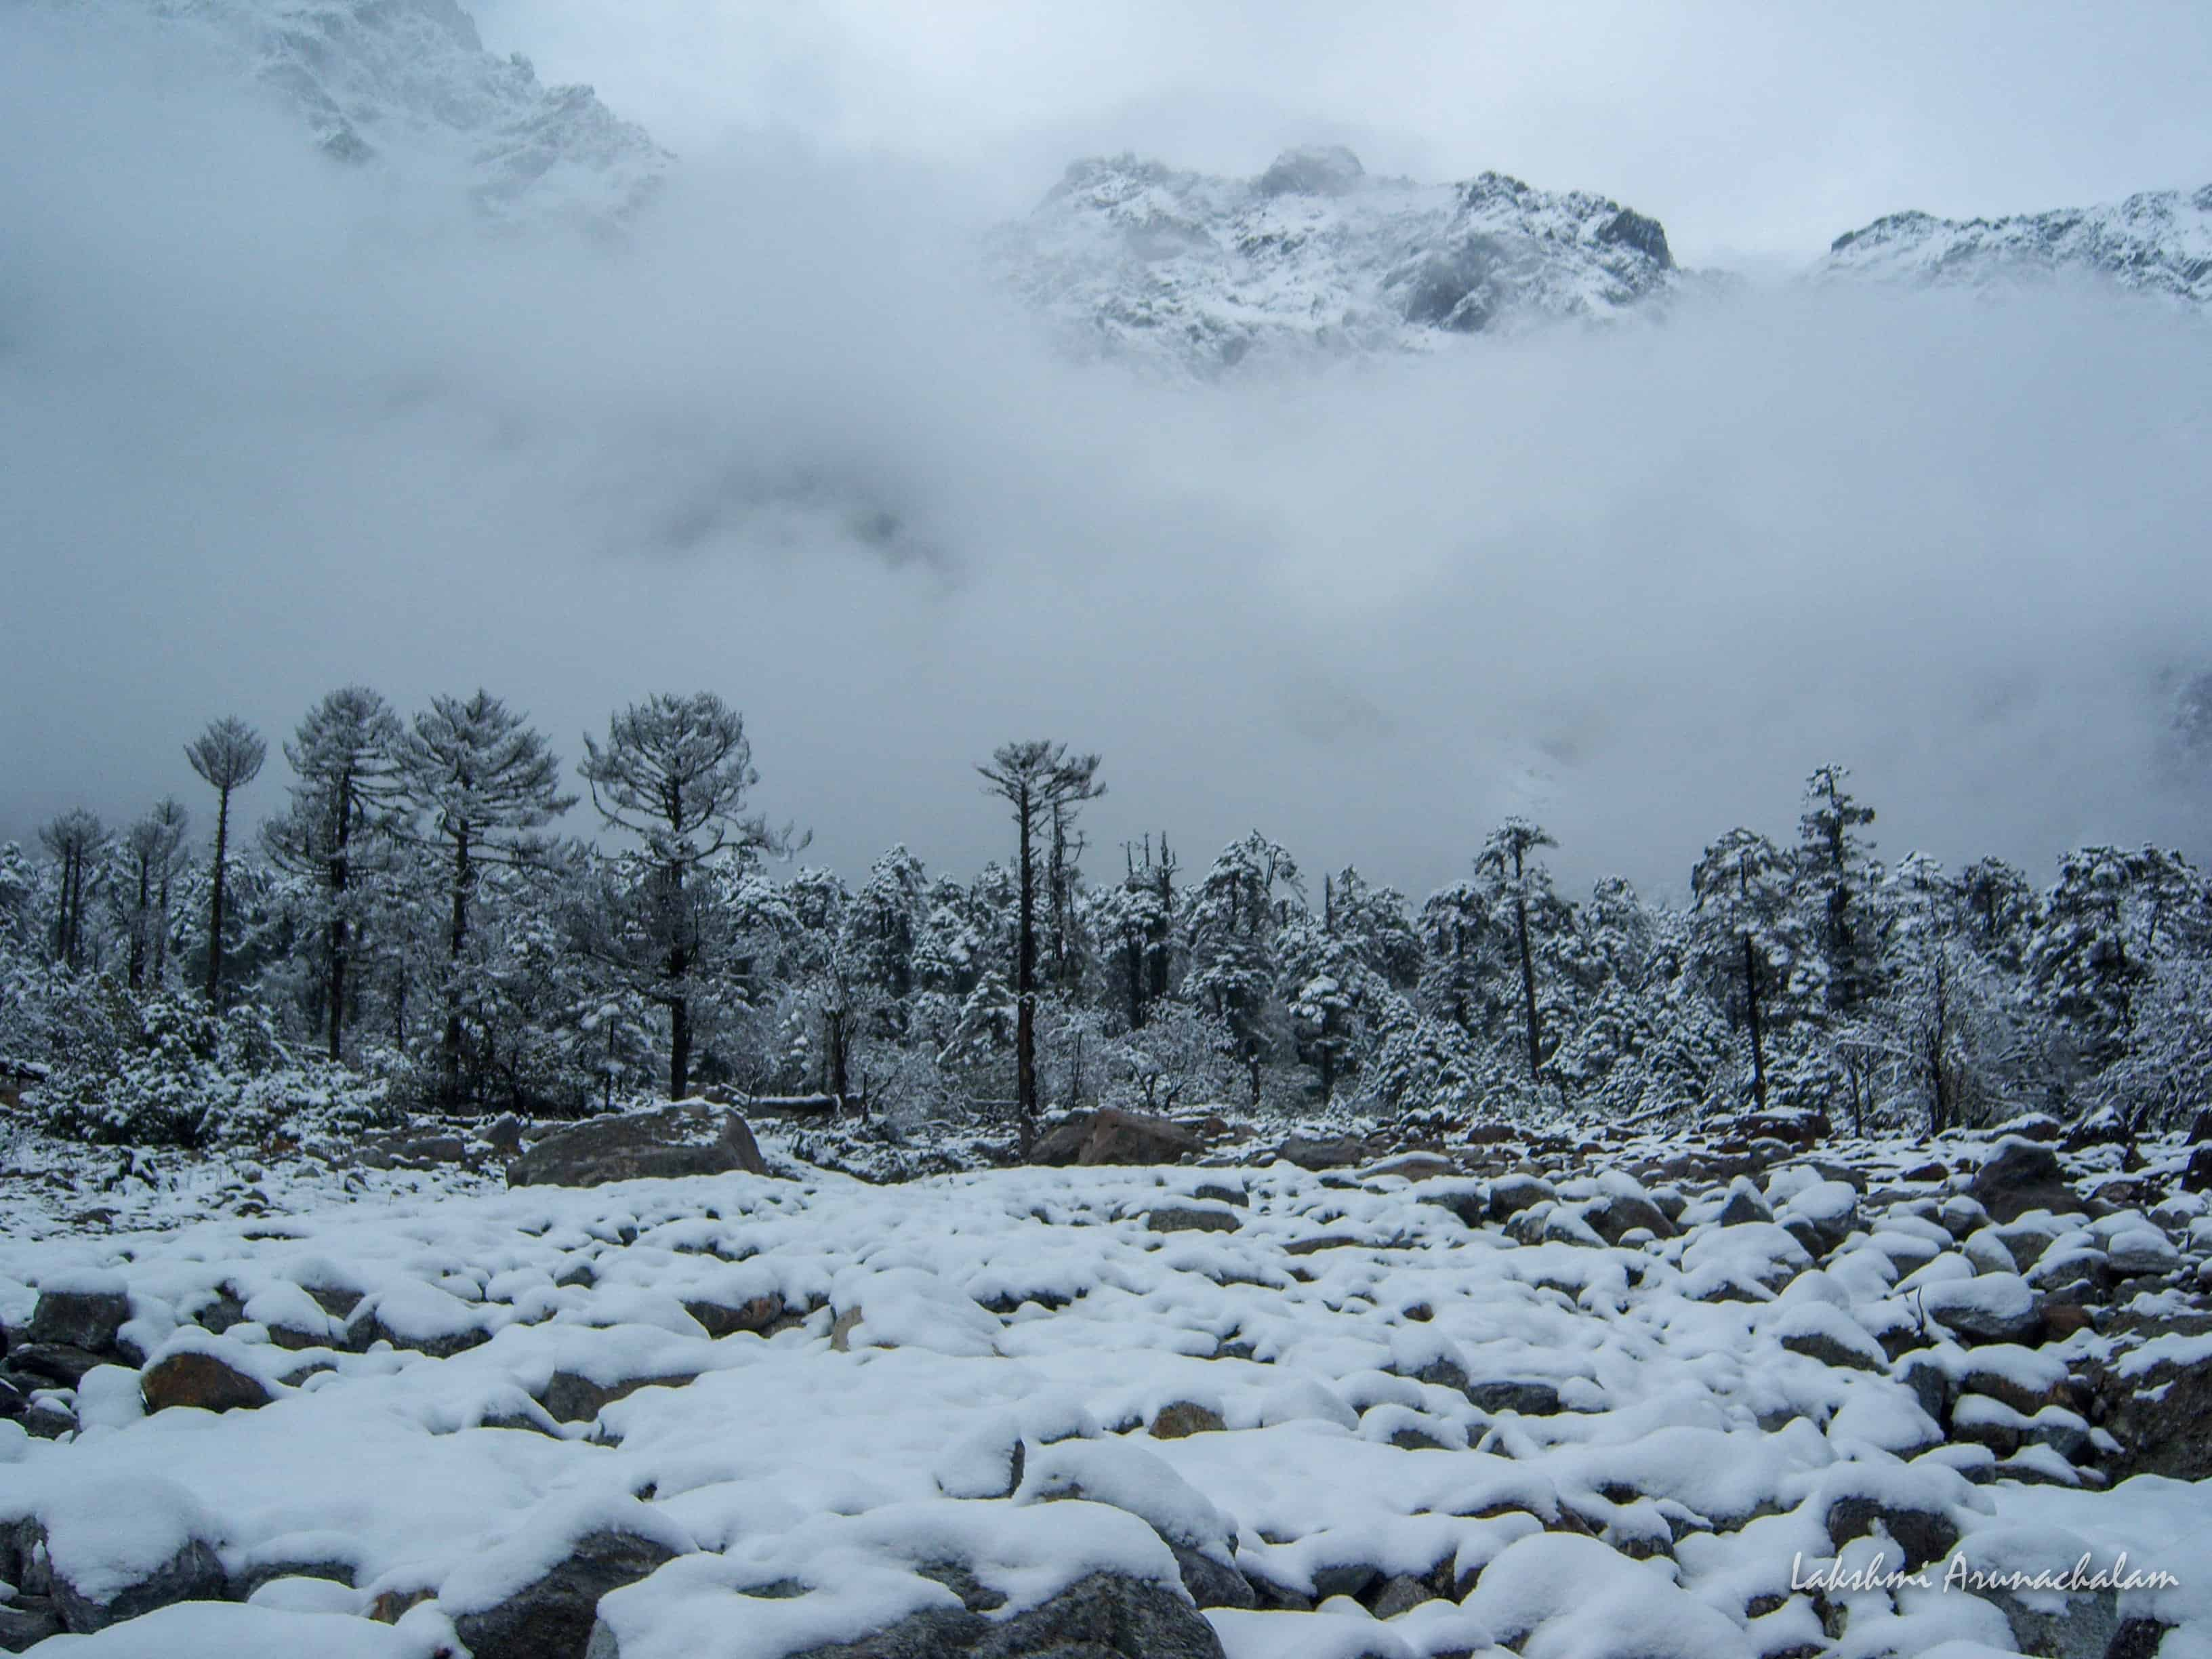 Shingba Sanctuary snowed down during winters